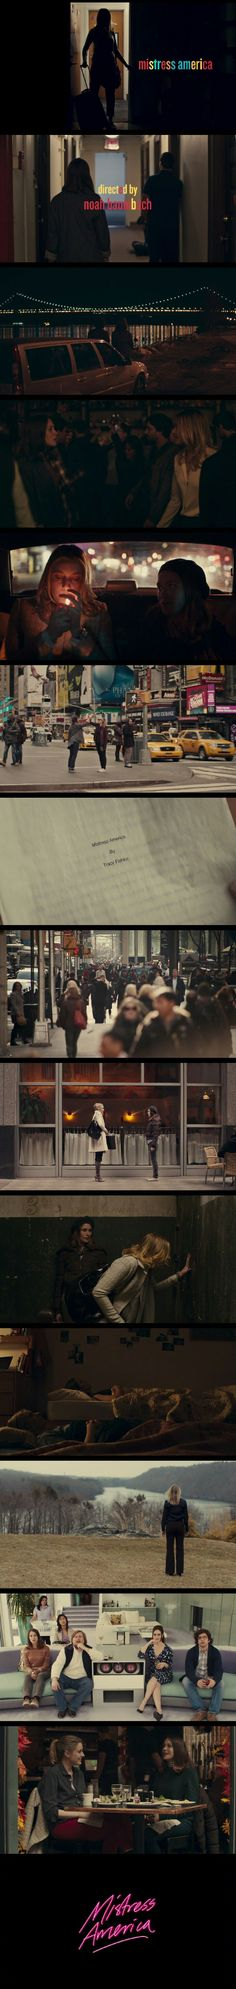 Mistress America (2015) Directed by Noah Baumbach. Starring Greta Gerwig and Lola Kirke in leading roles.